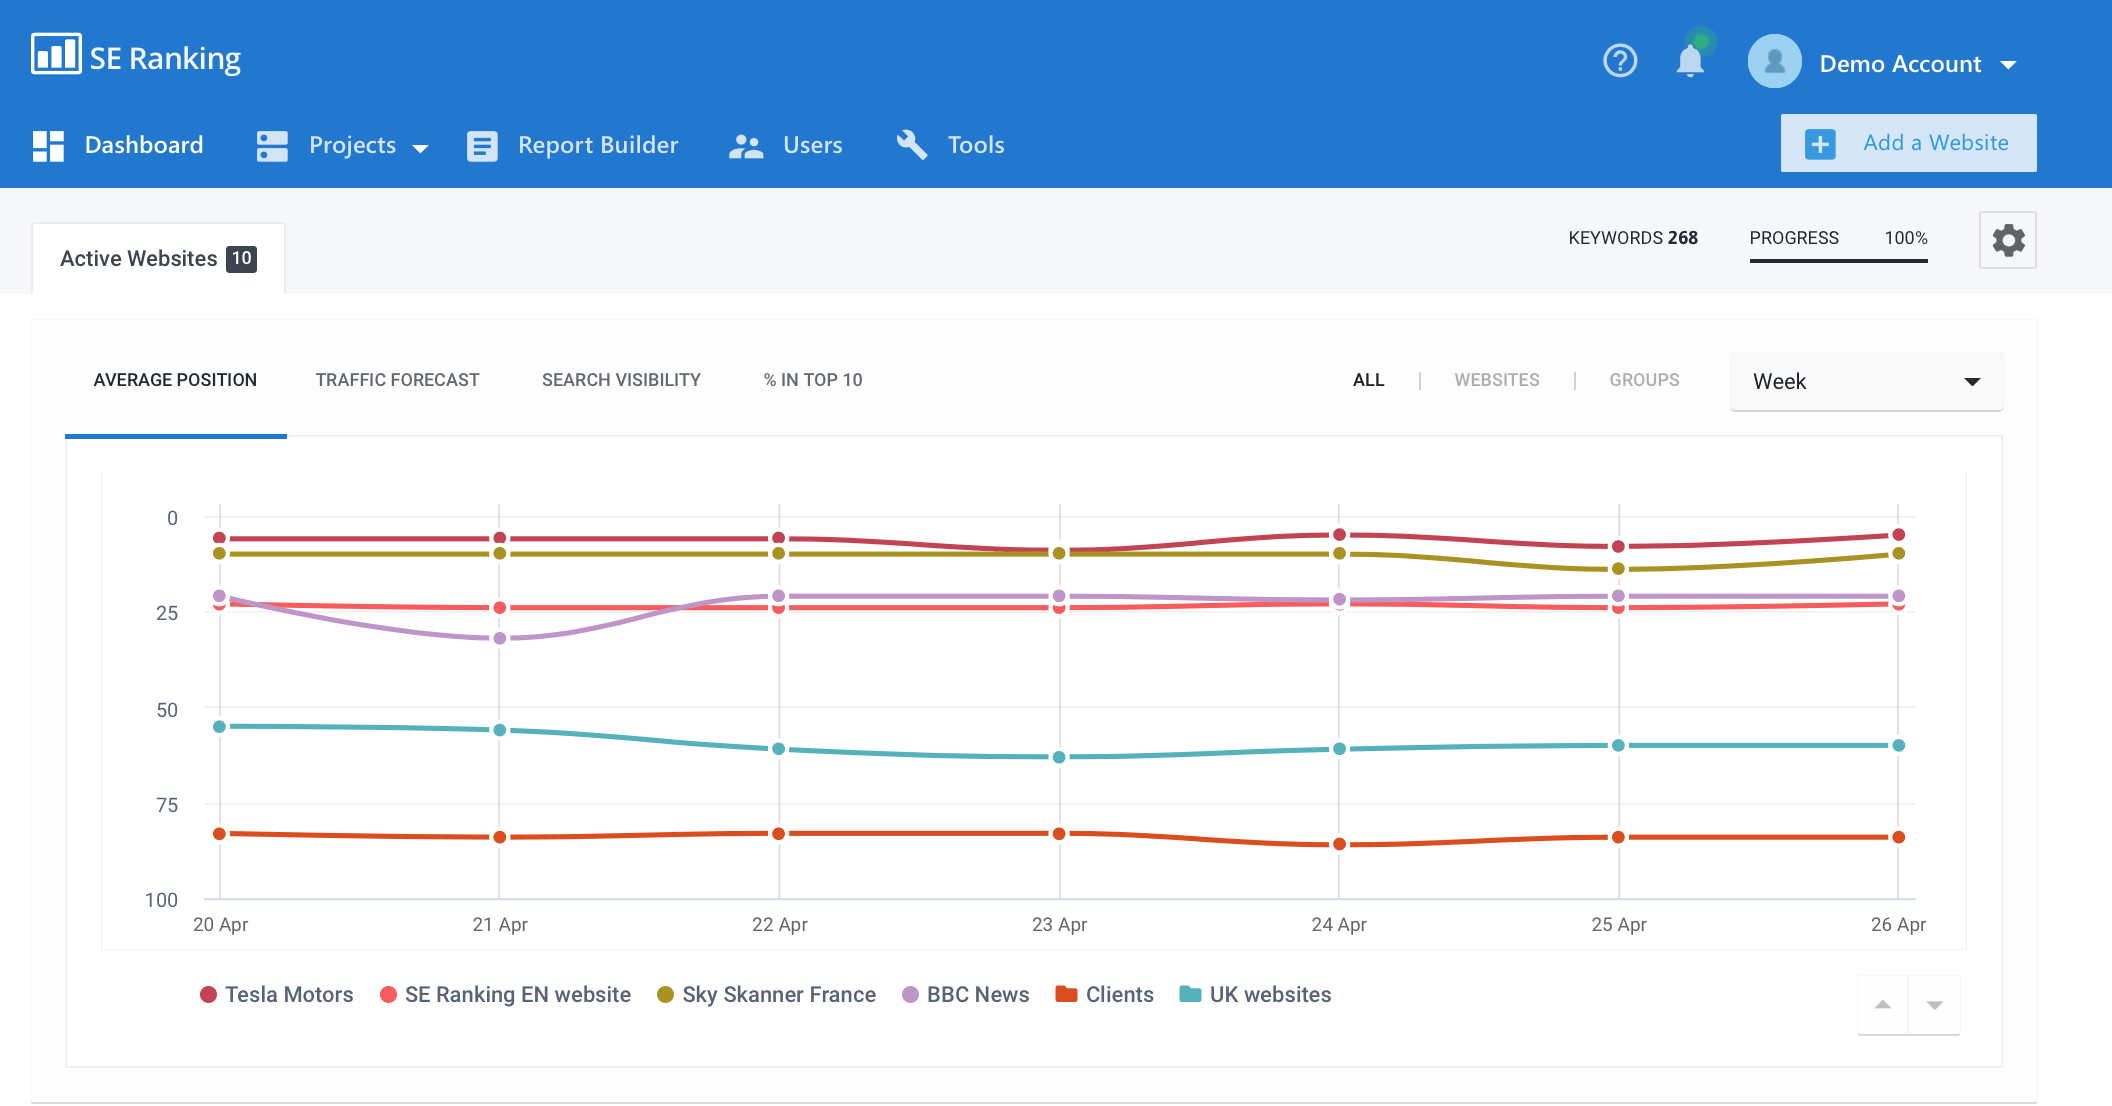 SE Ranking dashboard